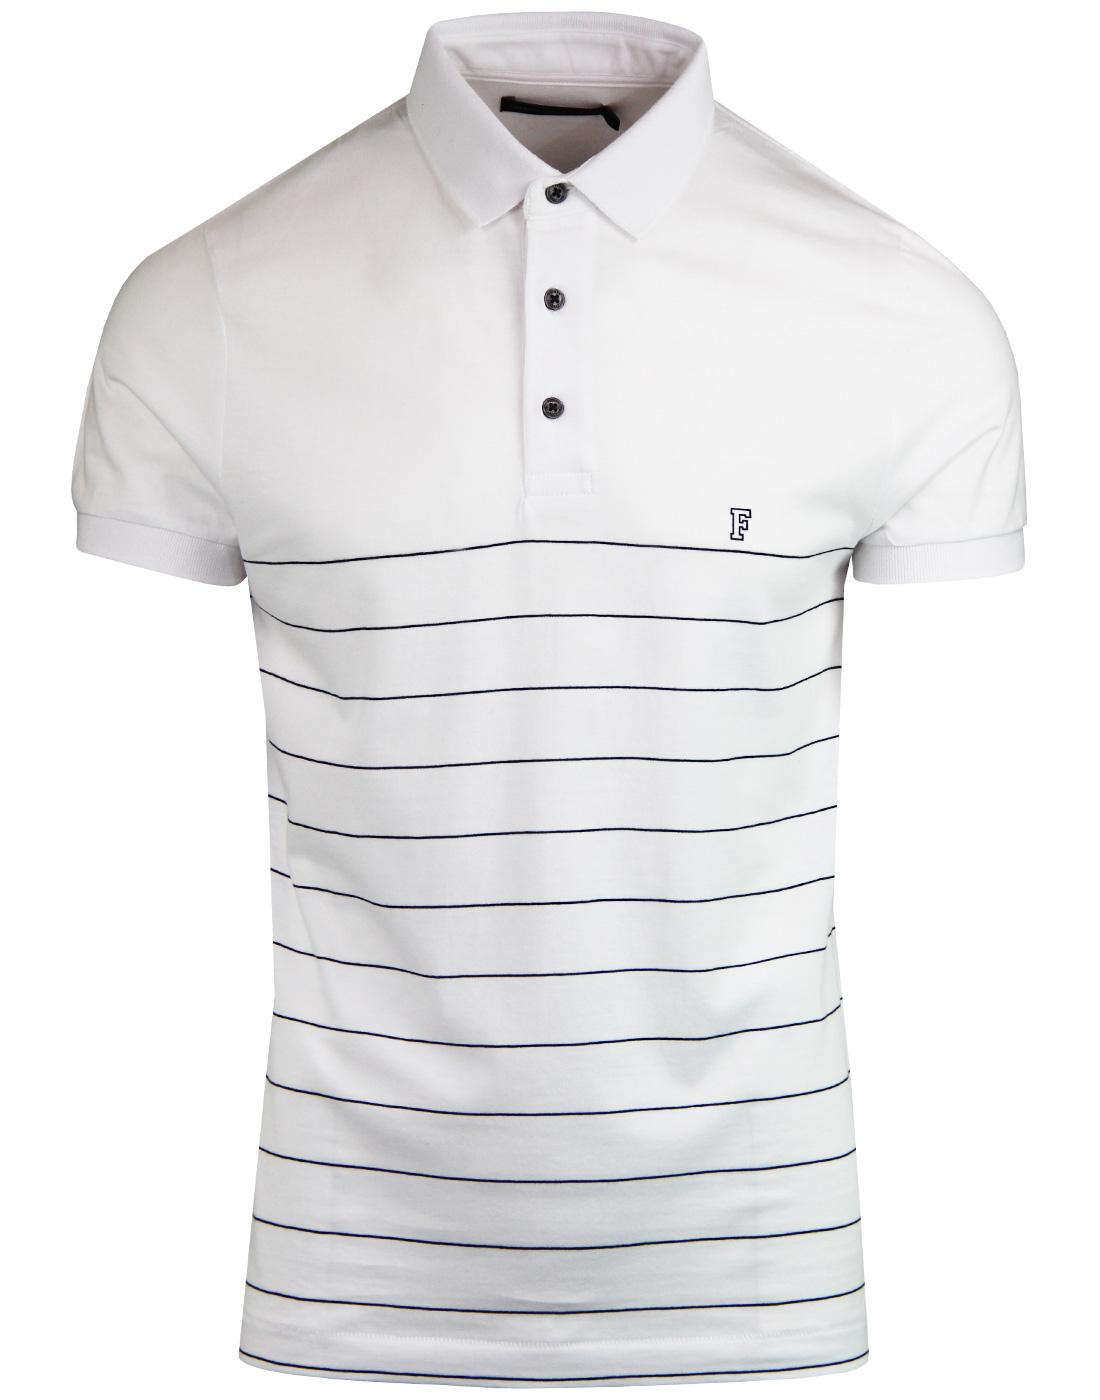 FRENCH CONNECTION Retro Engineered Stripe Polo Top